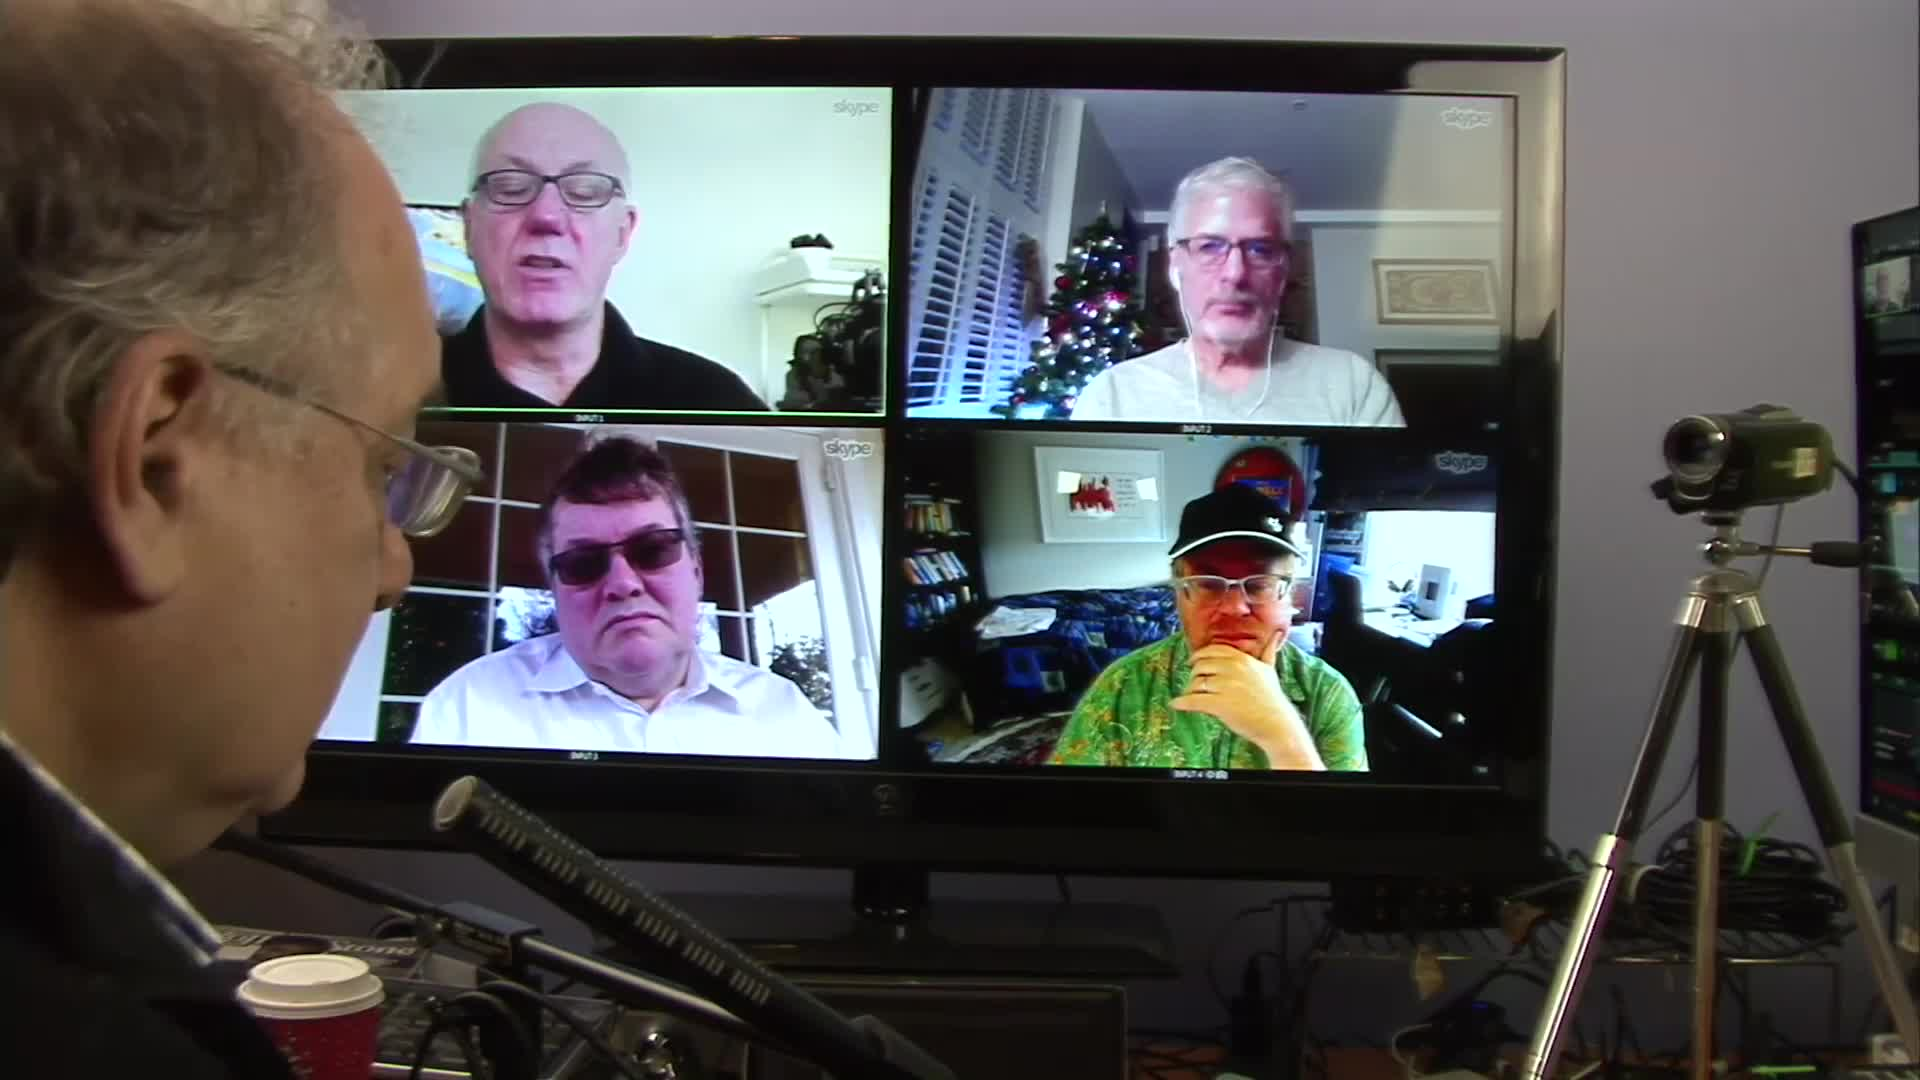 Gillmor Gang: Open and Shut